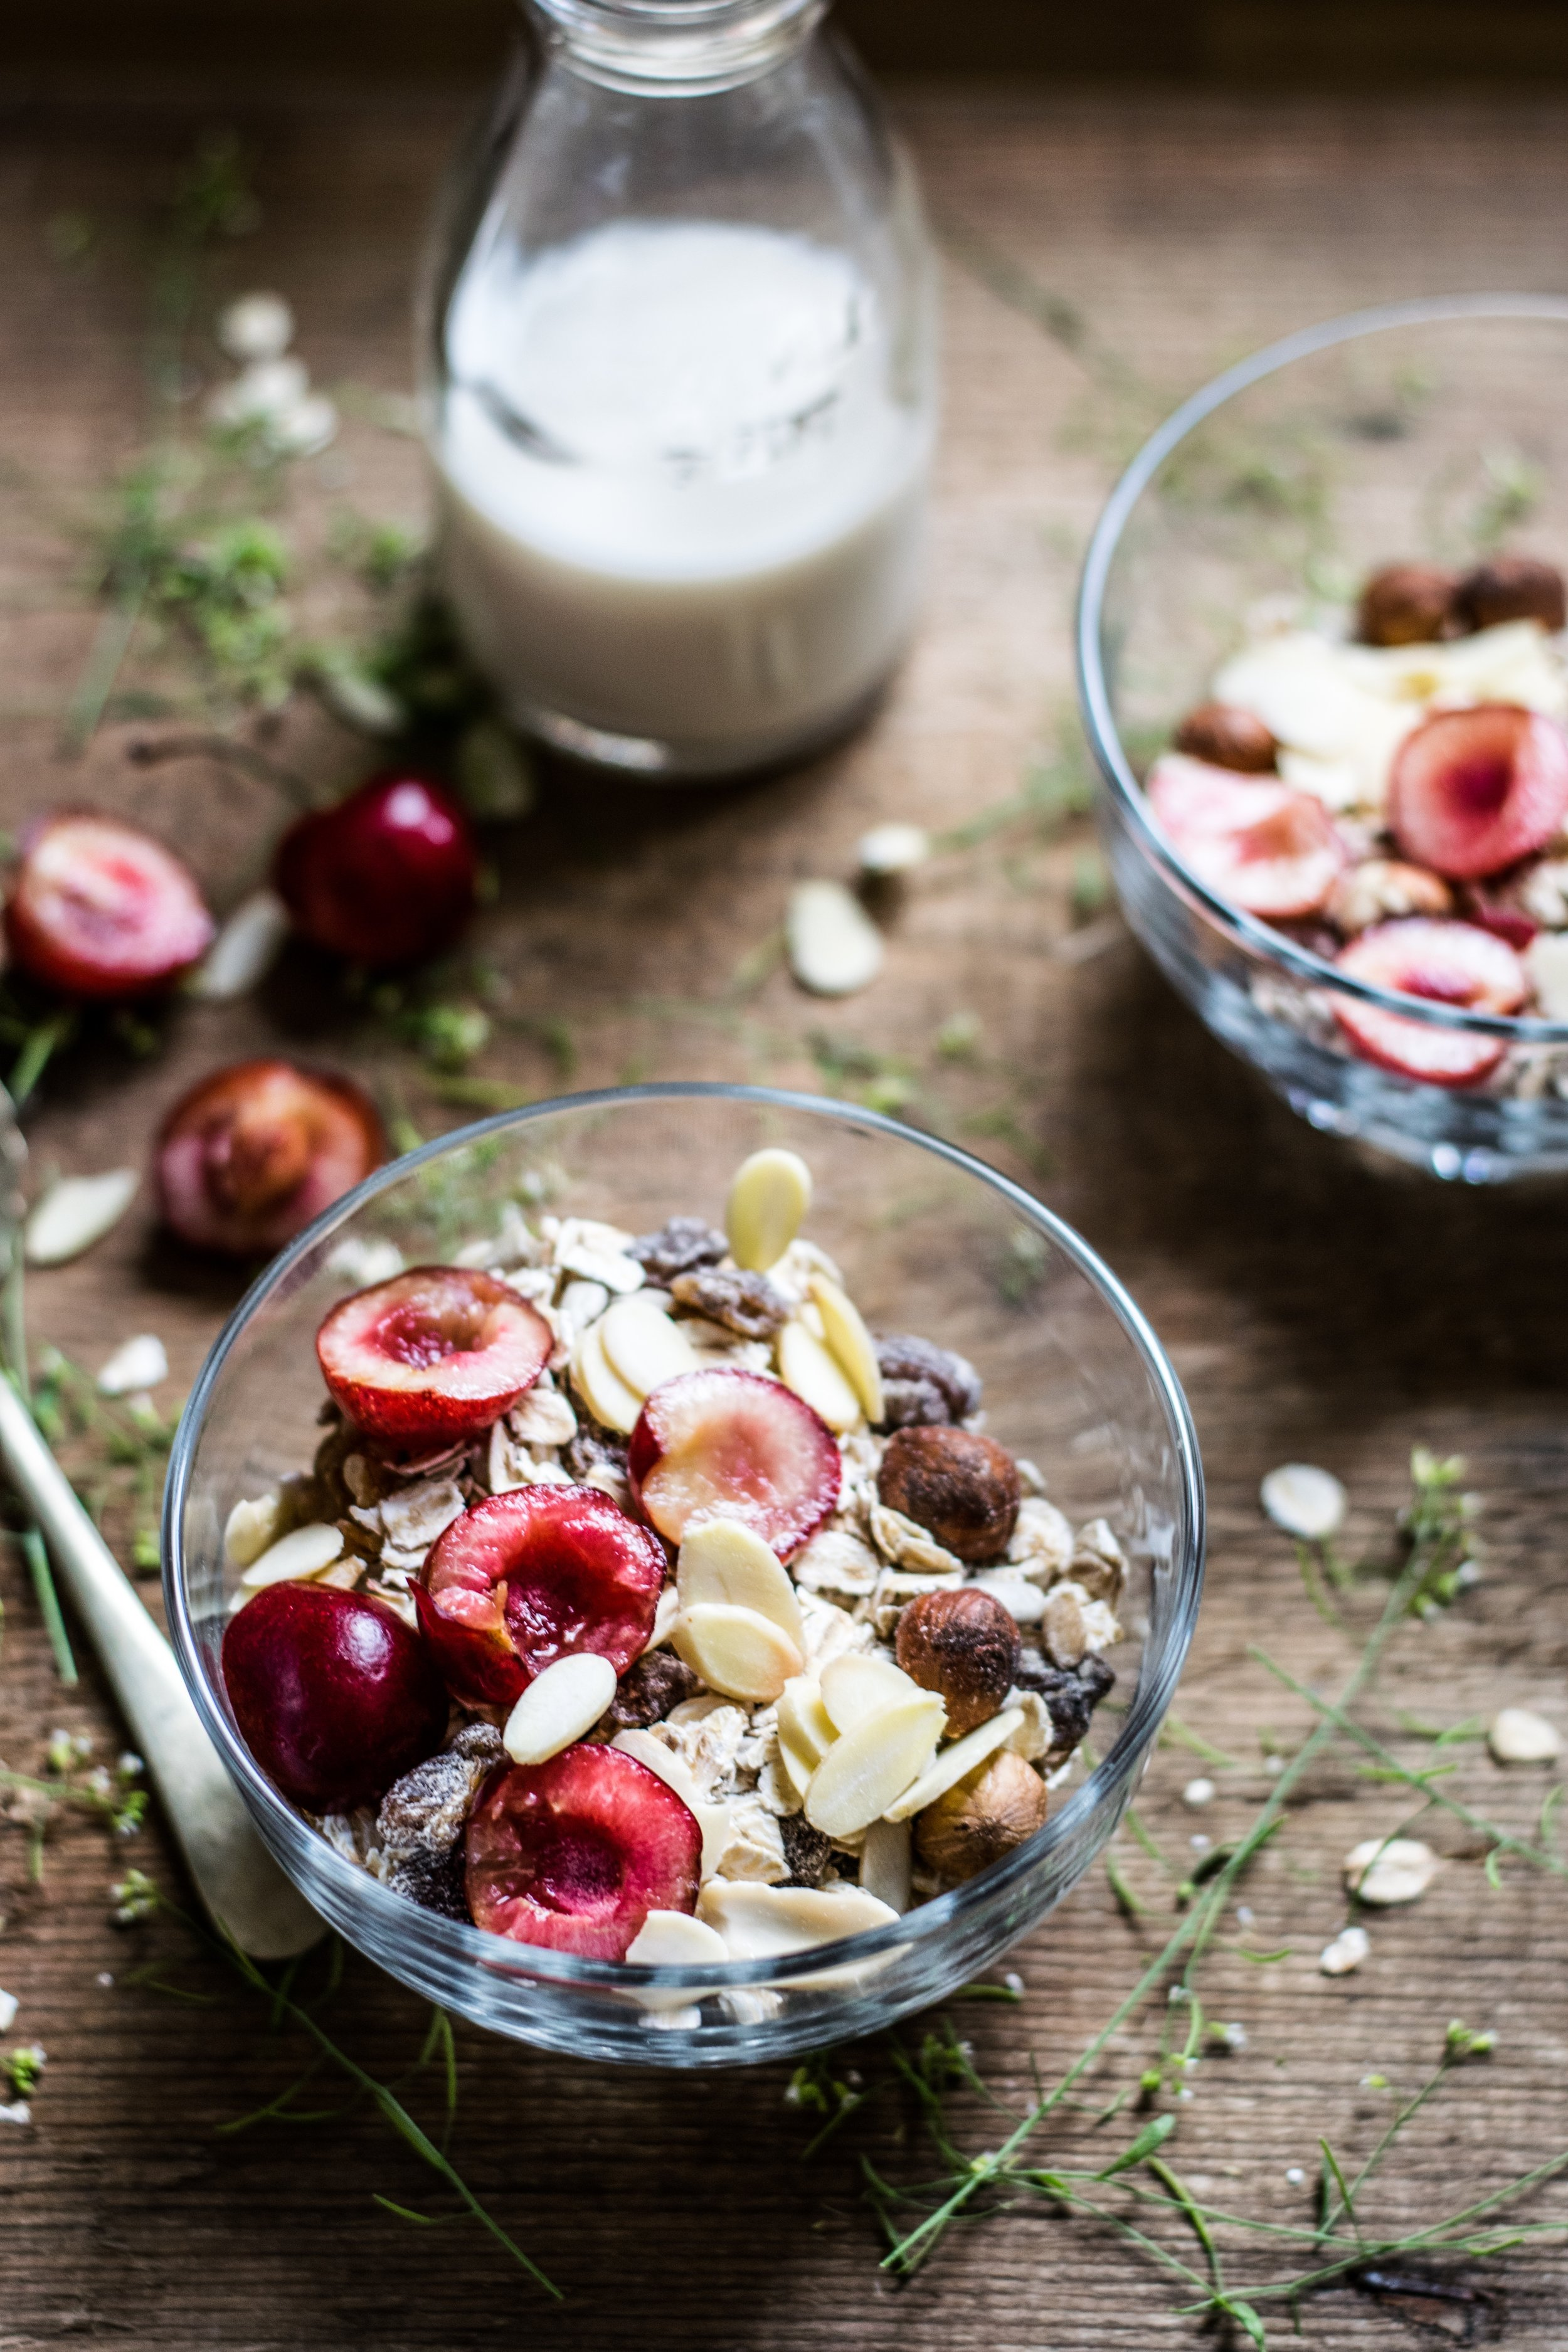 Homemade Nut Milk Almond Milk with Granola Cereal and Fruit Completely Golden Recipe.jpg